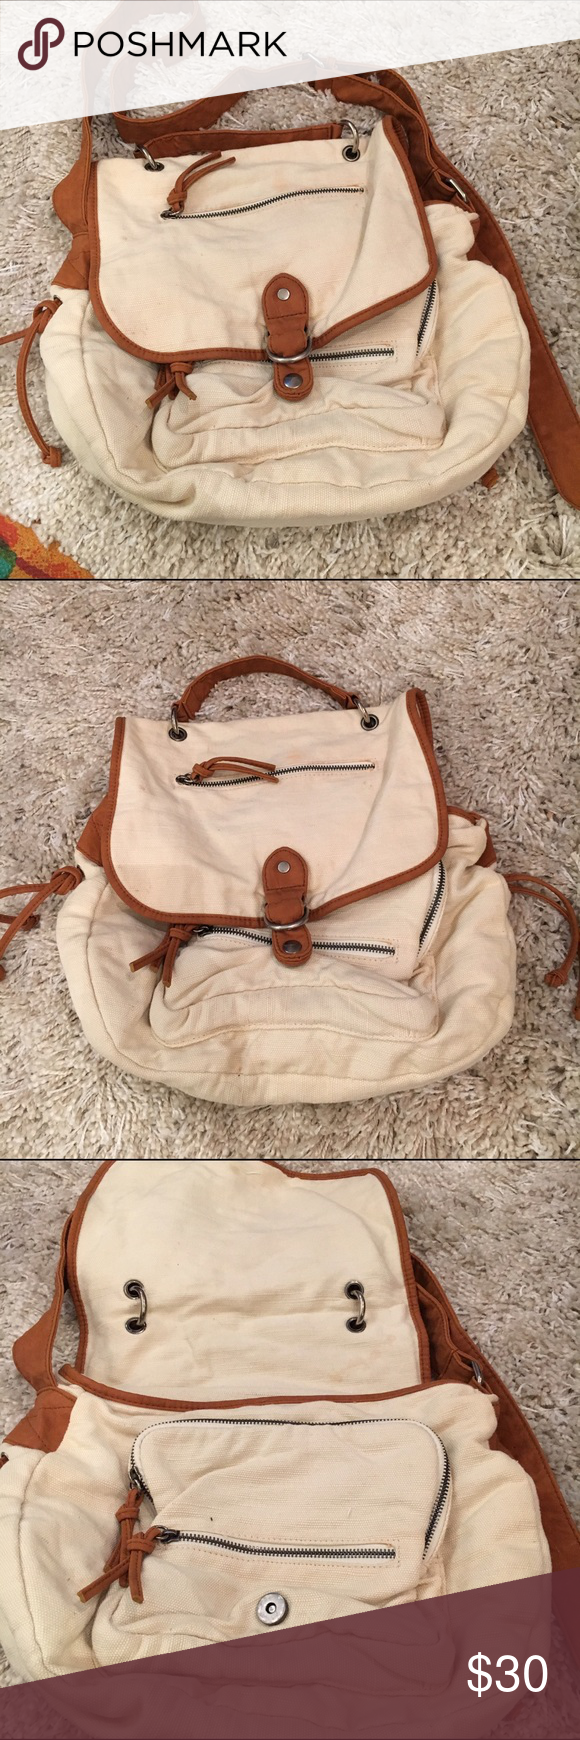 """Urban Outfitters Washed Canvas Satchel Cooperative by Urban Outfitters washed canvas satchel in ivory with brown lining and straps.  Aprox 10"""" length x 14"""" width, 5"""" depth/thickness Urban Outfitters Bags Satchels"""